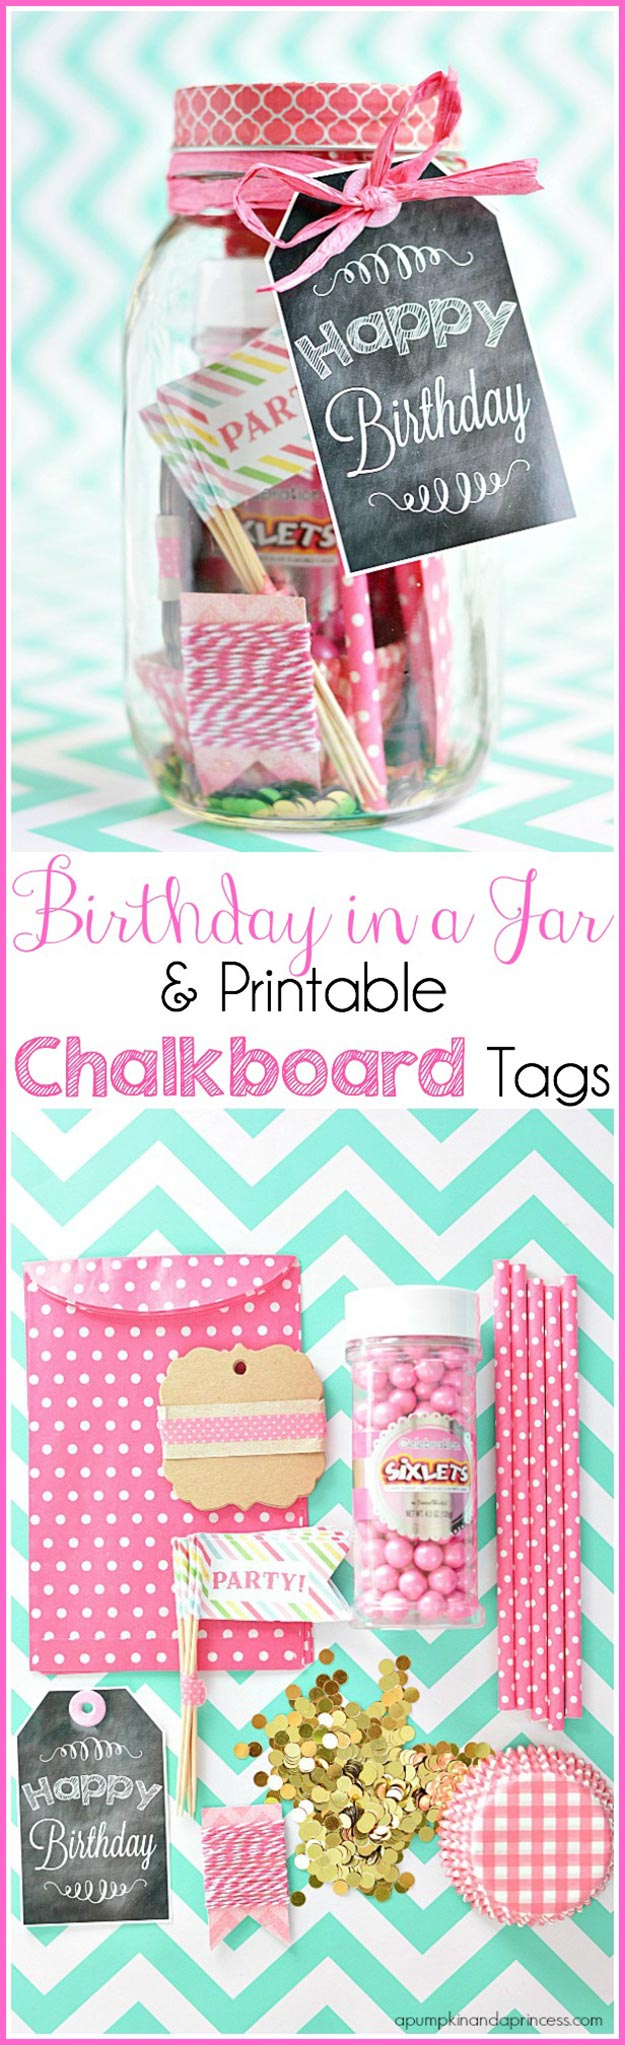 Cheap DIY Gifts to Make For Friends | DIY Birthday In A Jar | BFF Gift Ideas for Birthday, Christmas | Cool Crafts For Teens and Girls